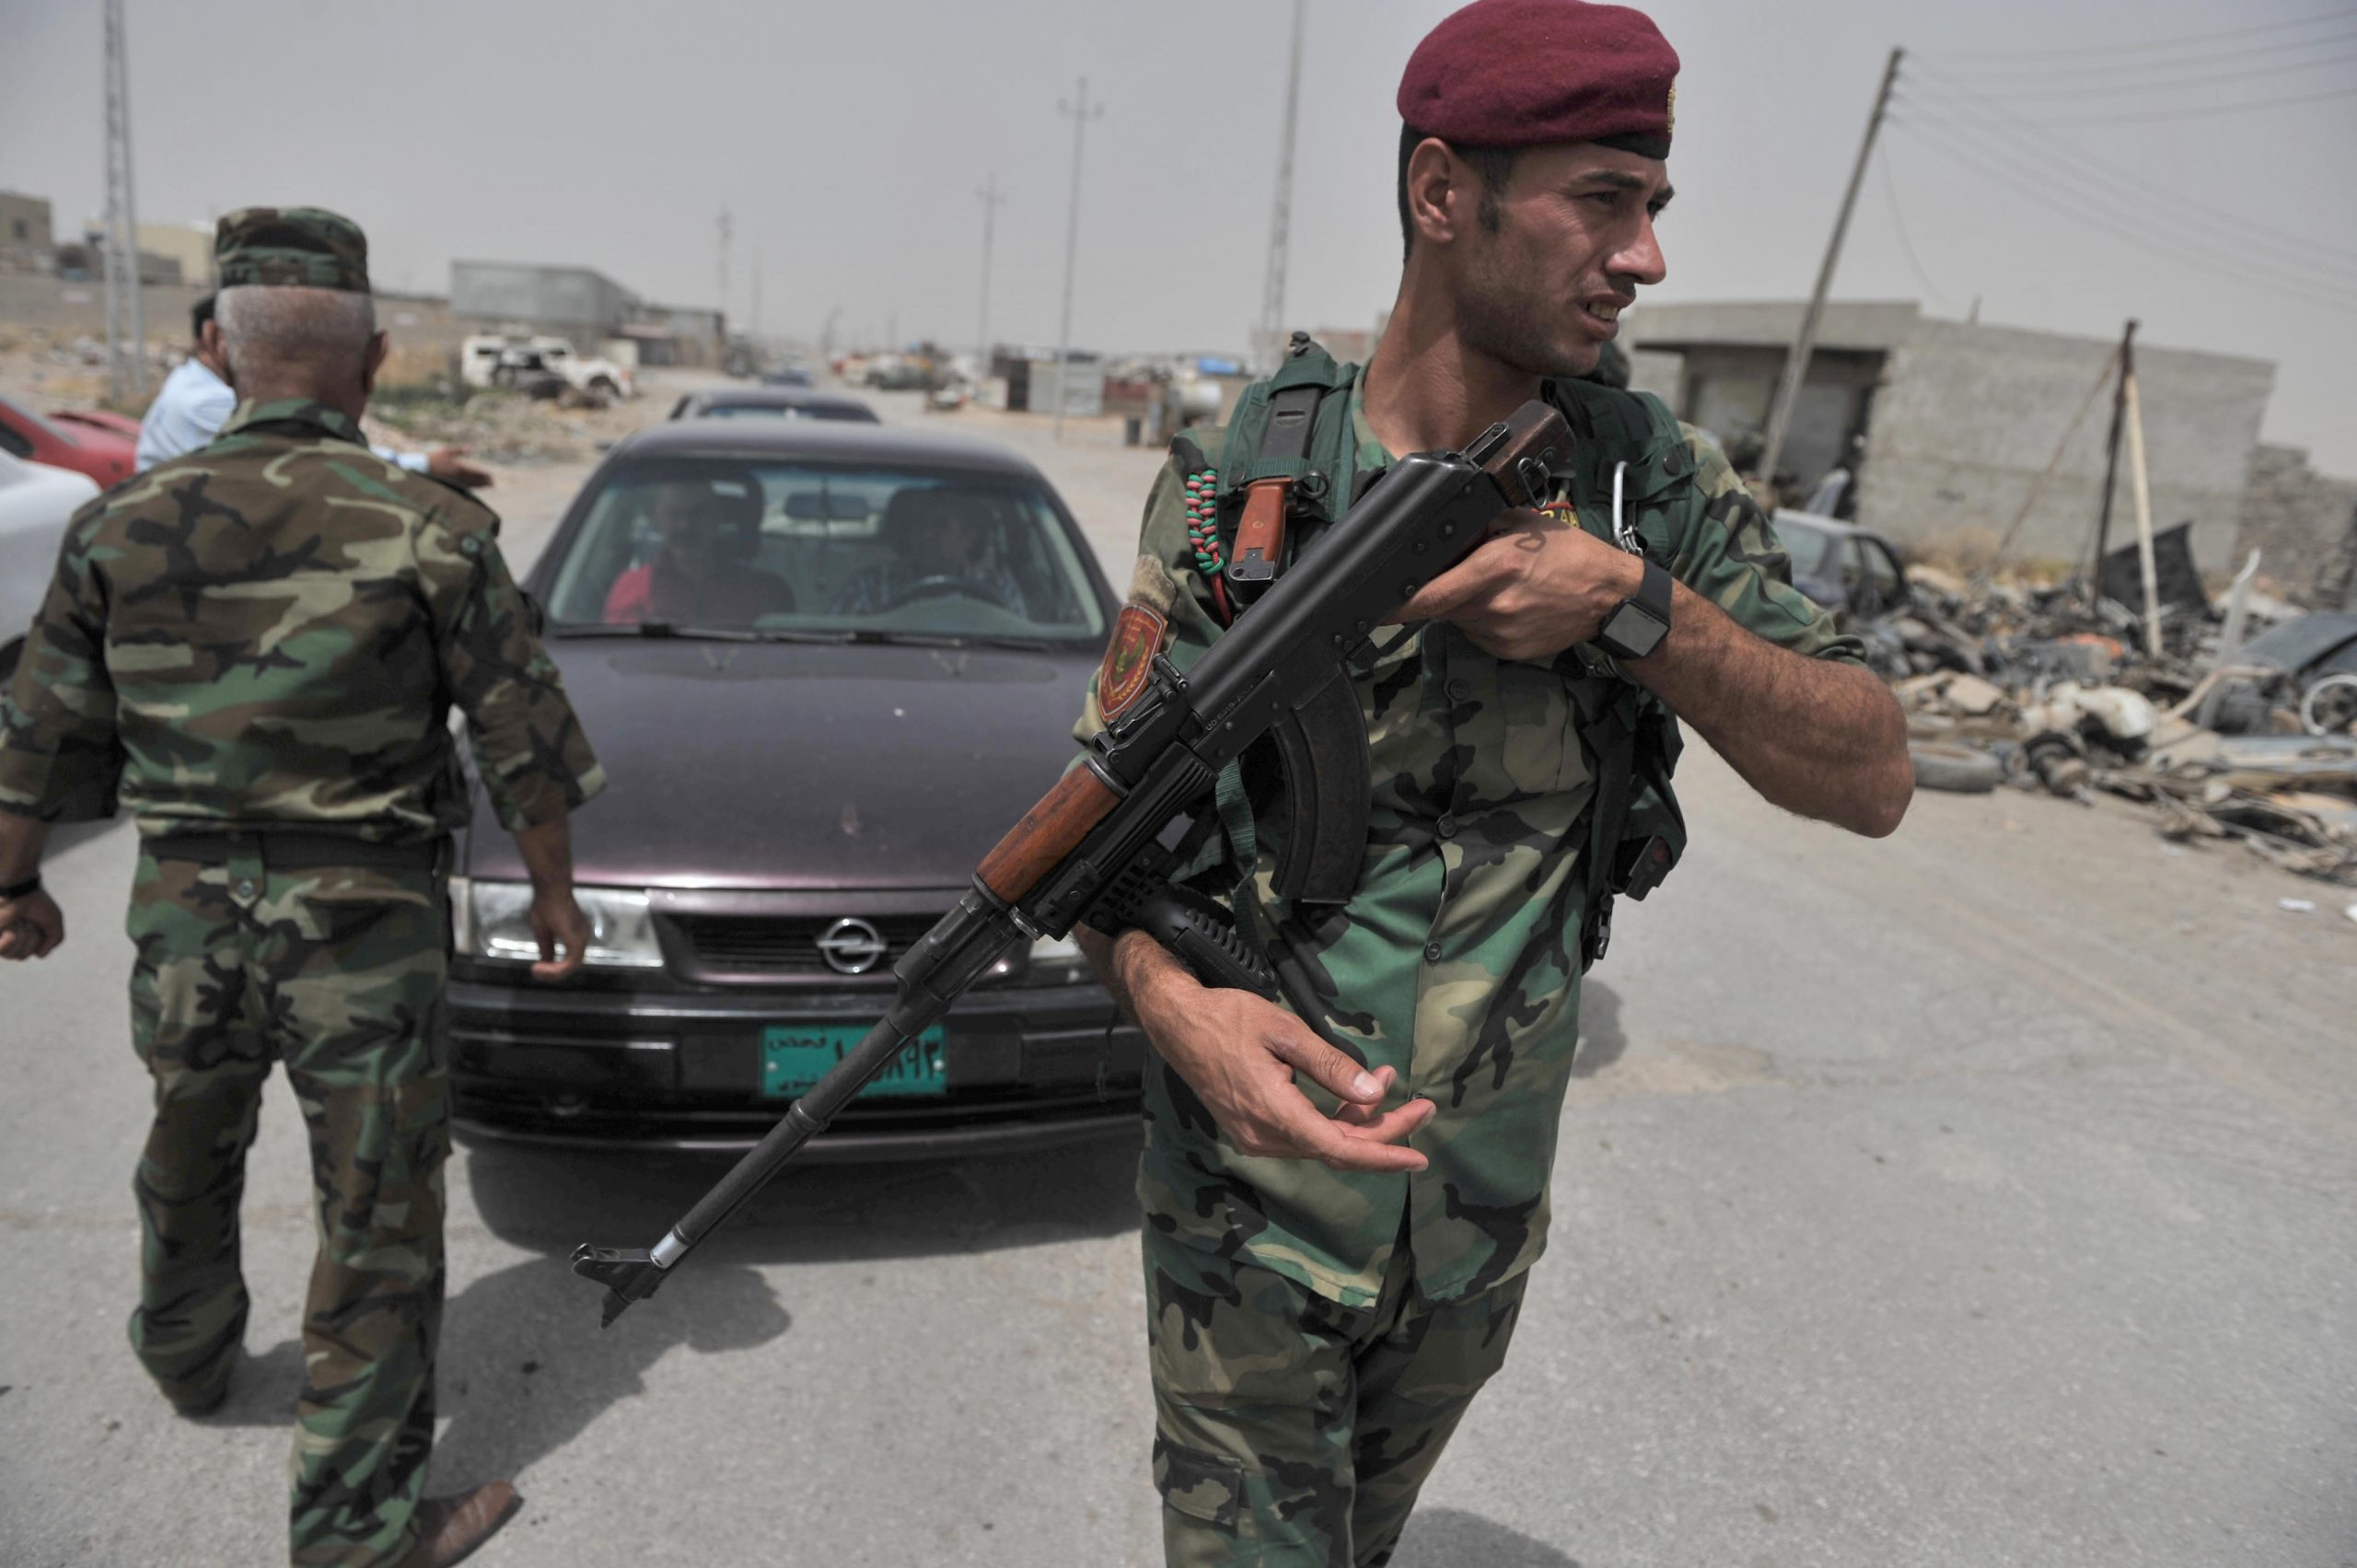 Peshmargas of Iraq Kurdistan Regional Government take security precautions on Mosul-Erbil road on the outskirts of Mosul after the militants of Islamic State in Iraq and the Levant seized Mosul, in Iraq on 12 June, 2014.